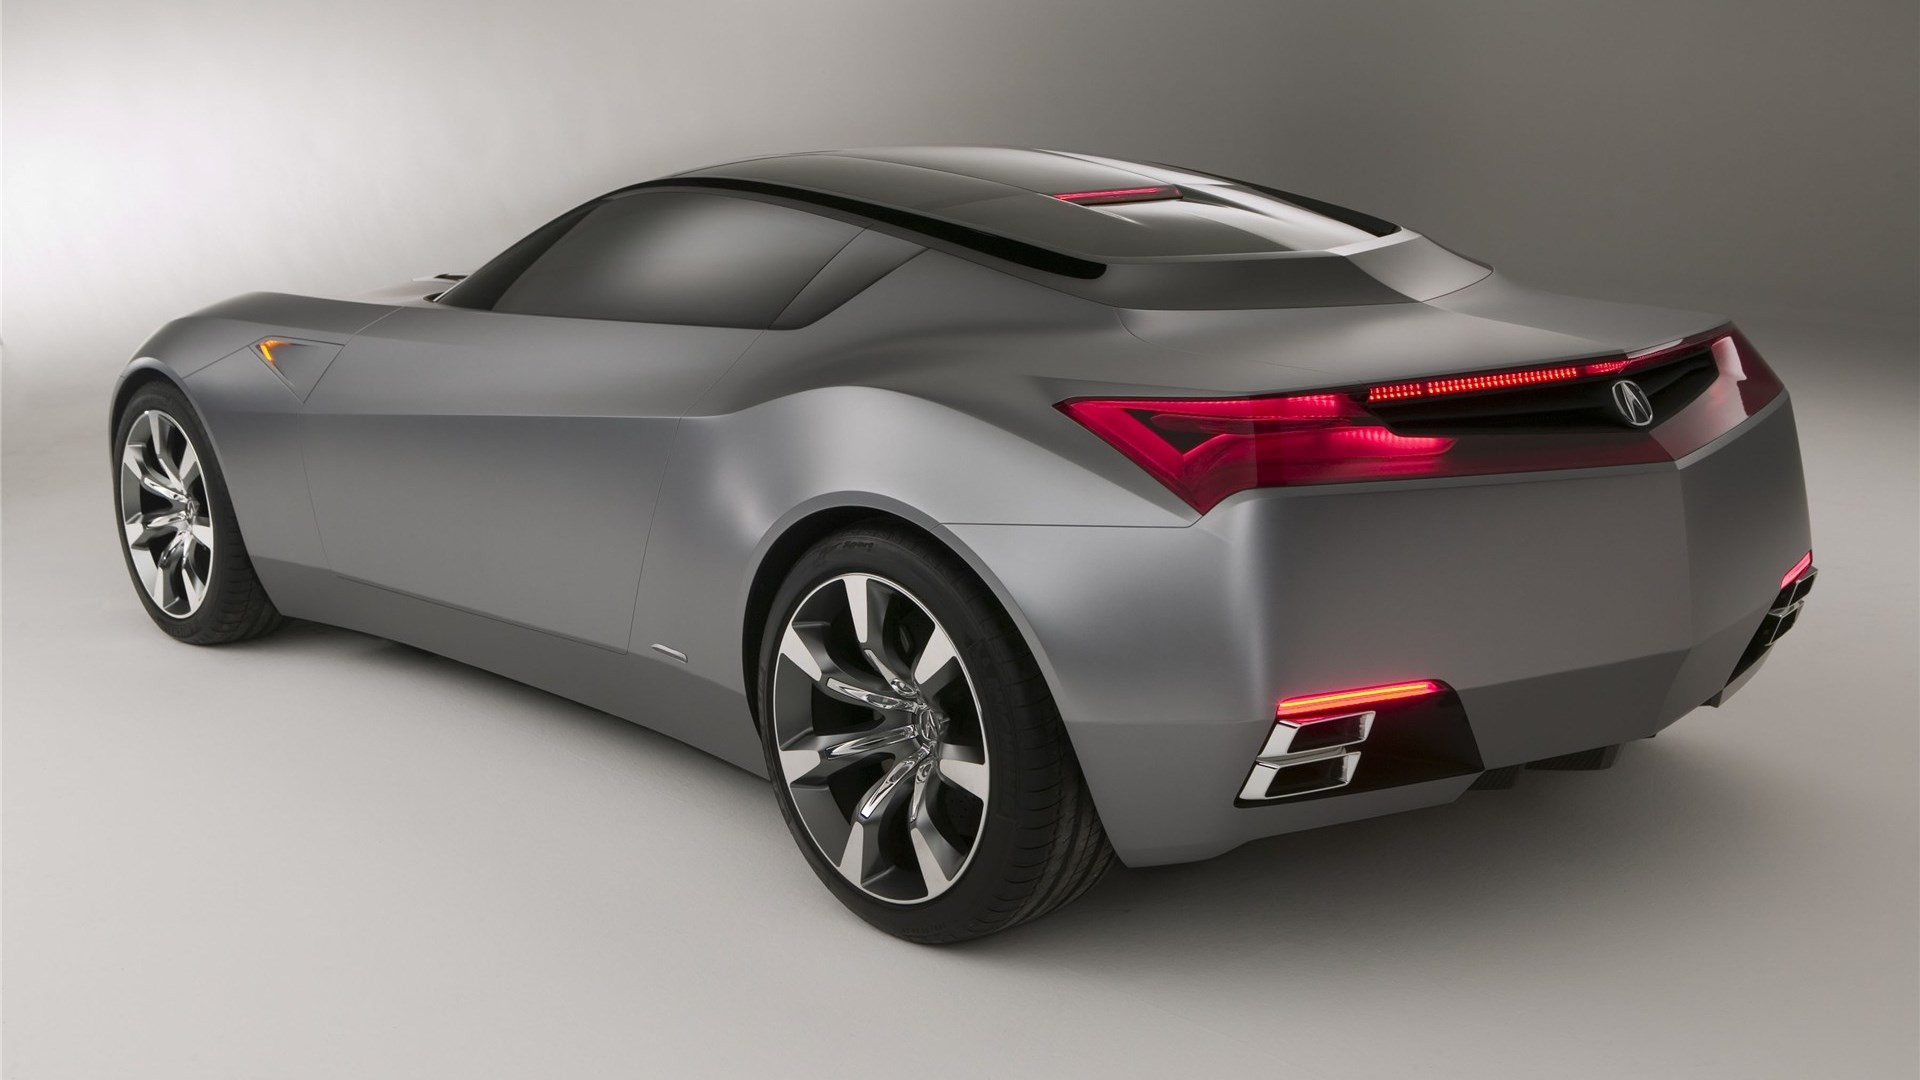 1920x1080-px-high-resolution-widescreen-acura-advanced-sedan-concept-by-Ellwood-Murphy-f-wallpaper-wpc900945